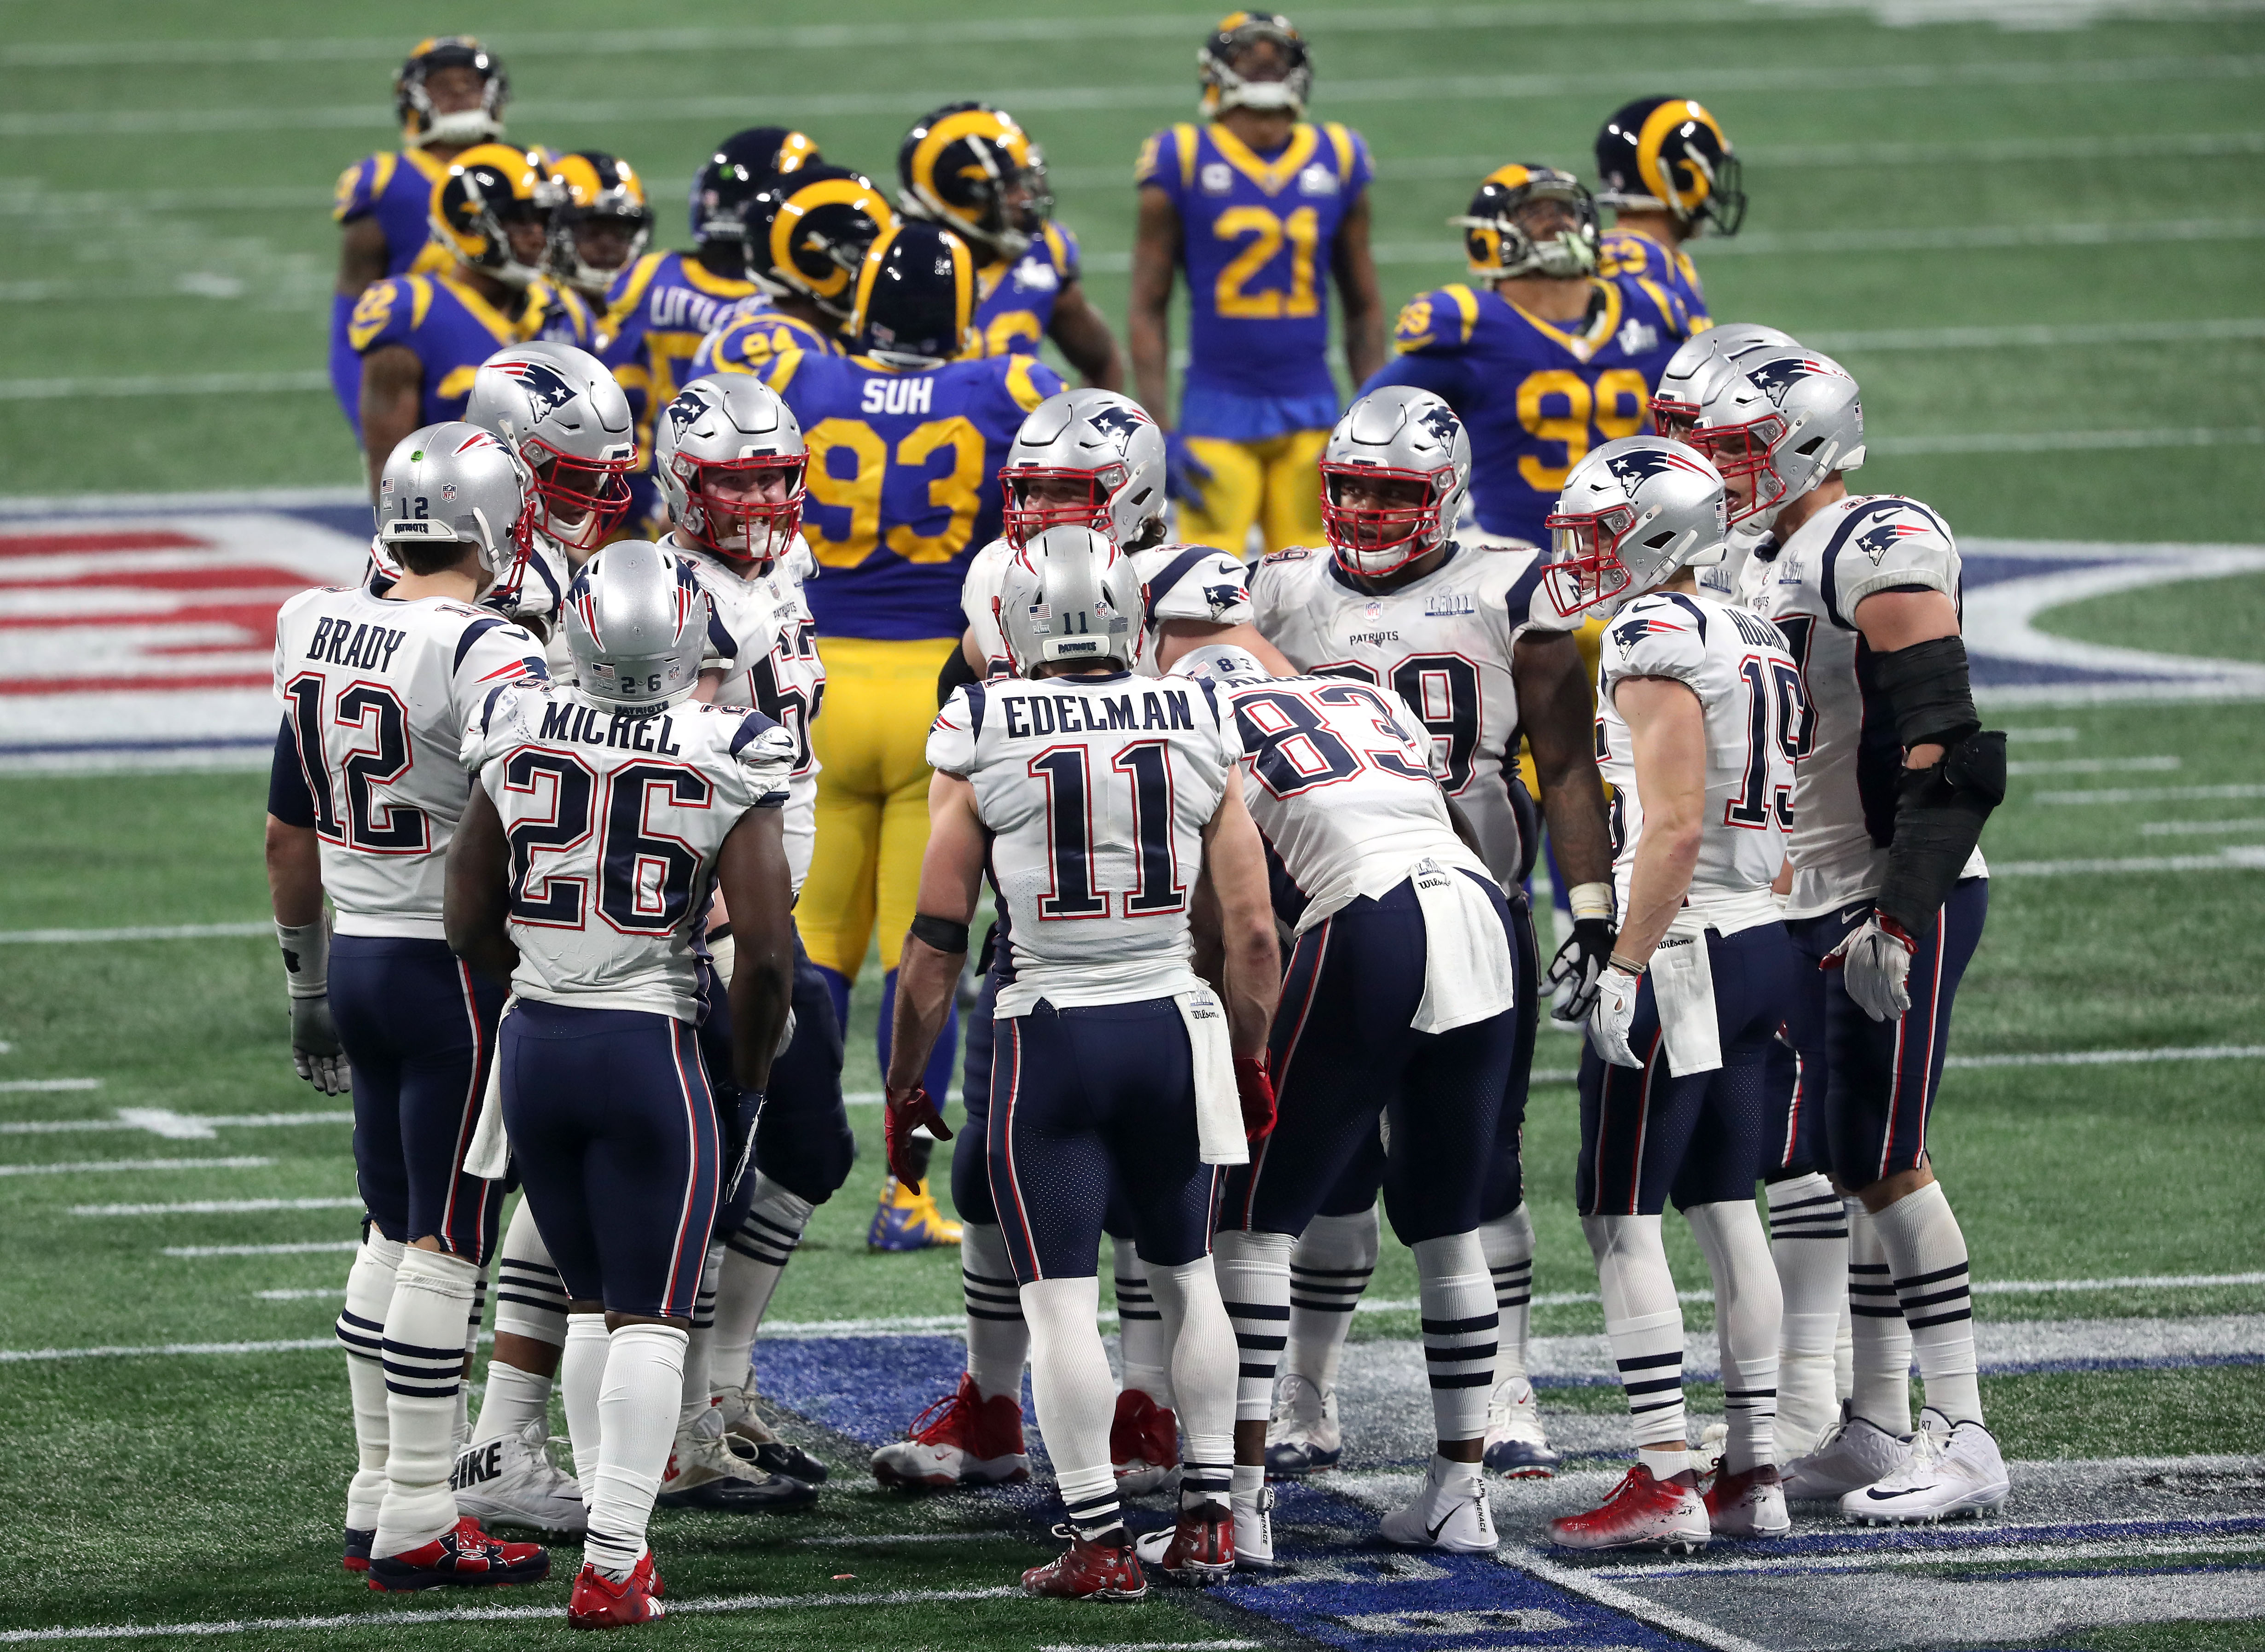 Super Bowl 53  7 observations from the Patriots 13-3 victory over the Rams 259f5688c